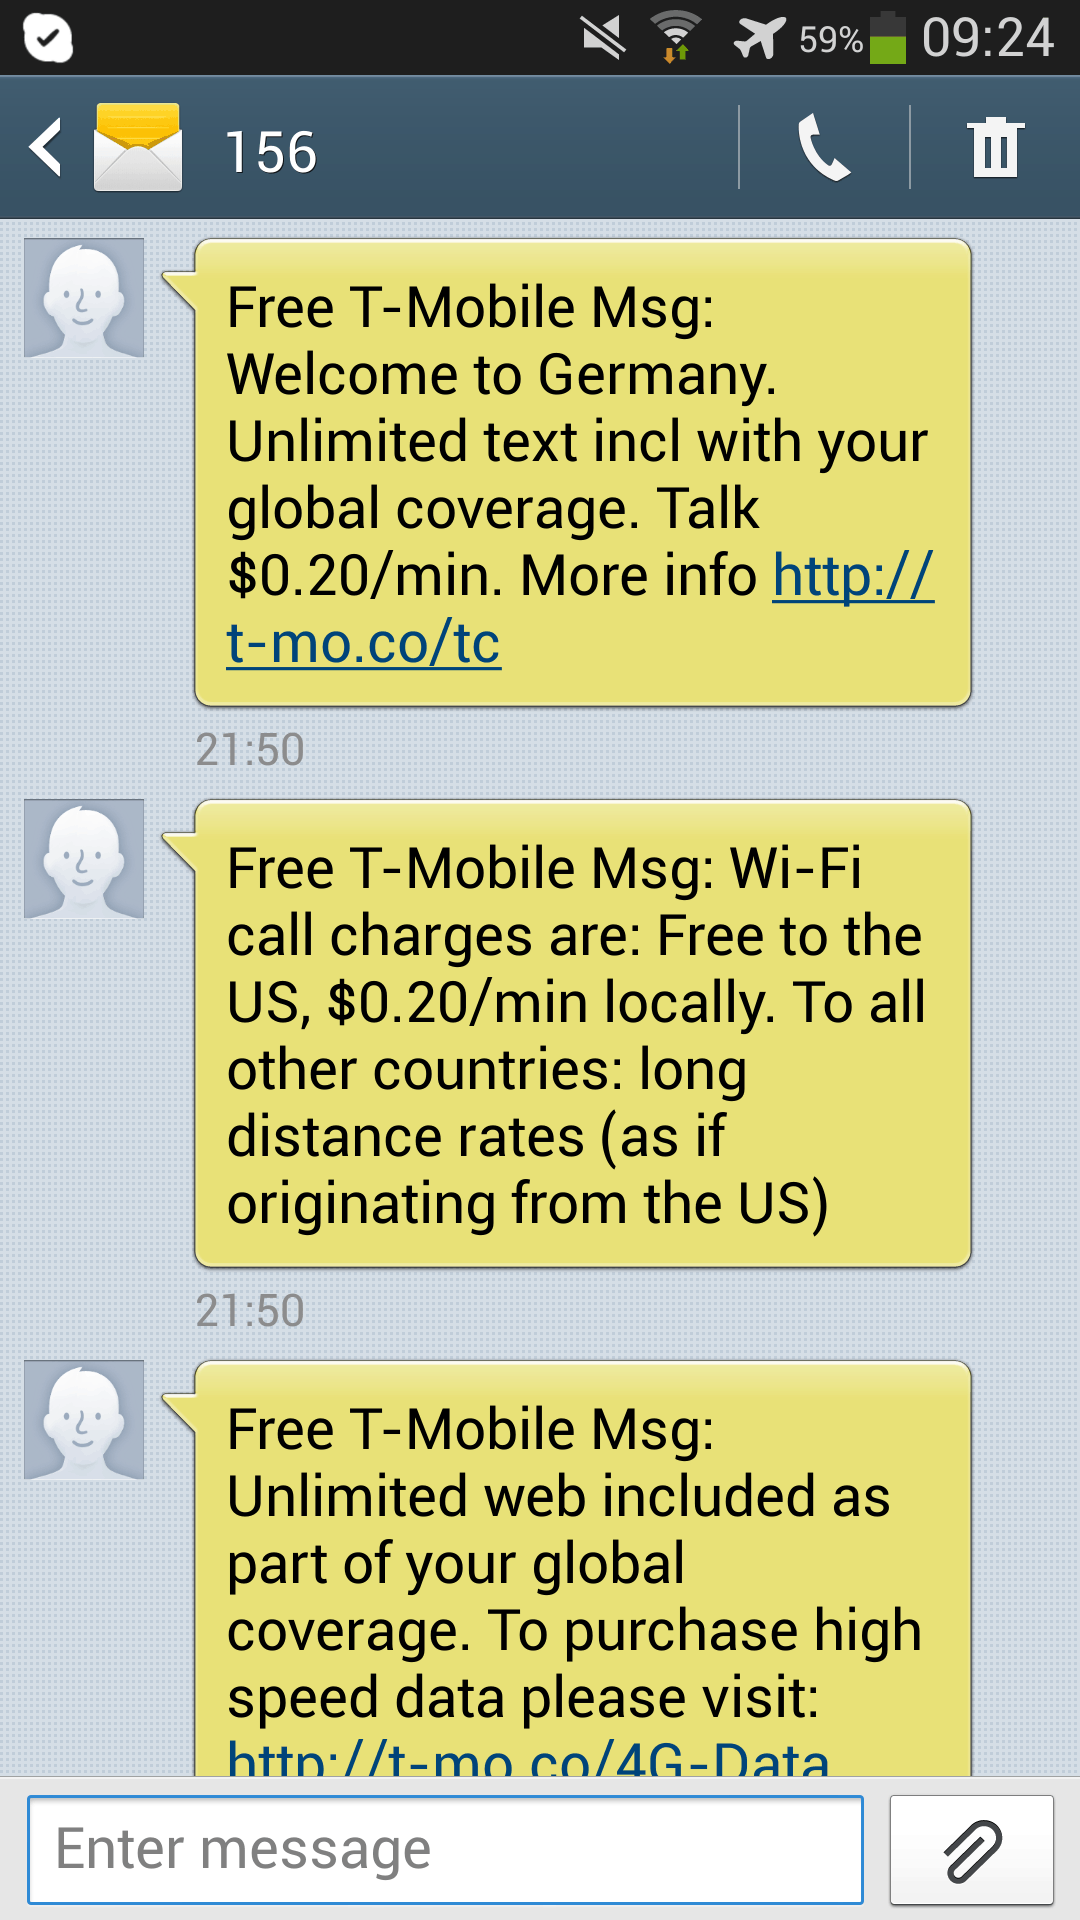 Testing T-Mobile's Global Unlimited Data Plan in Germany